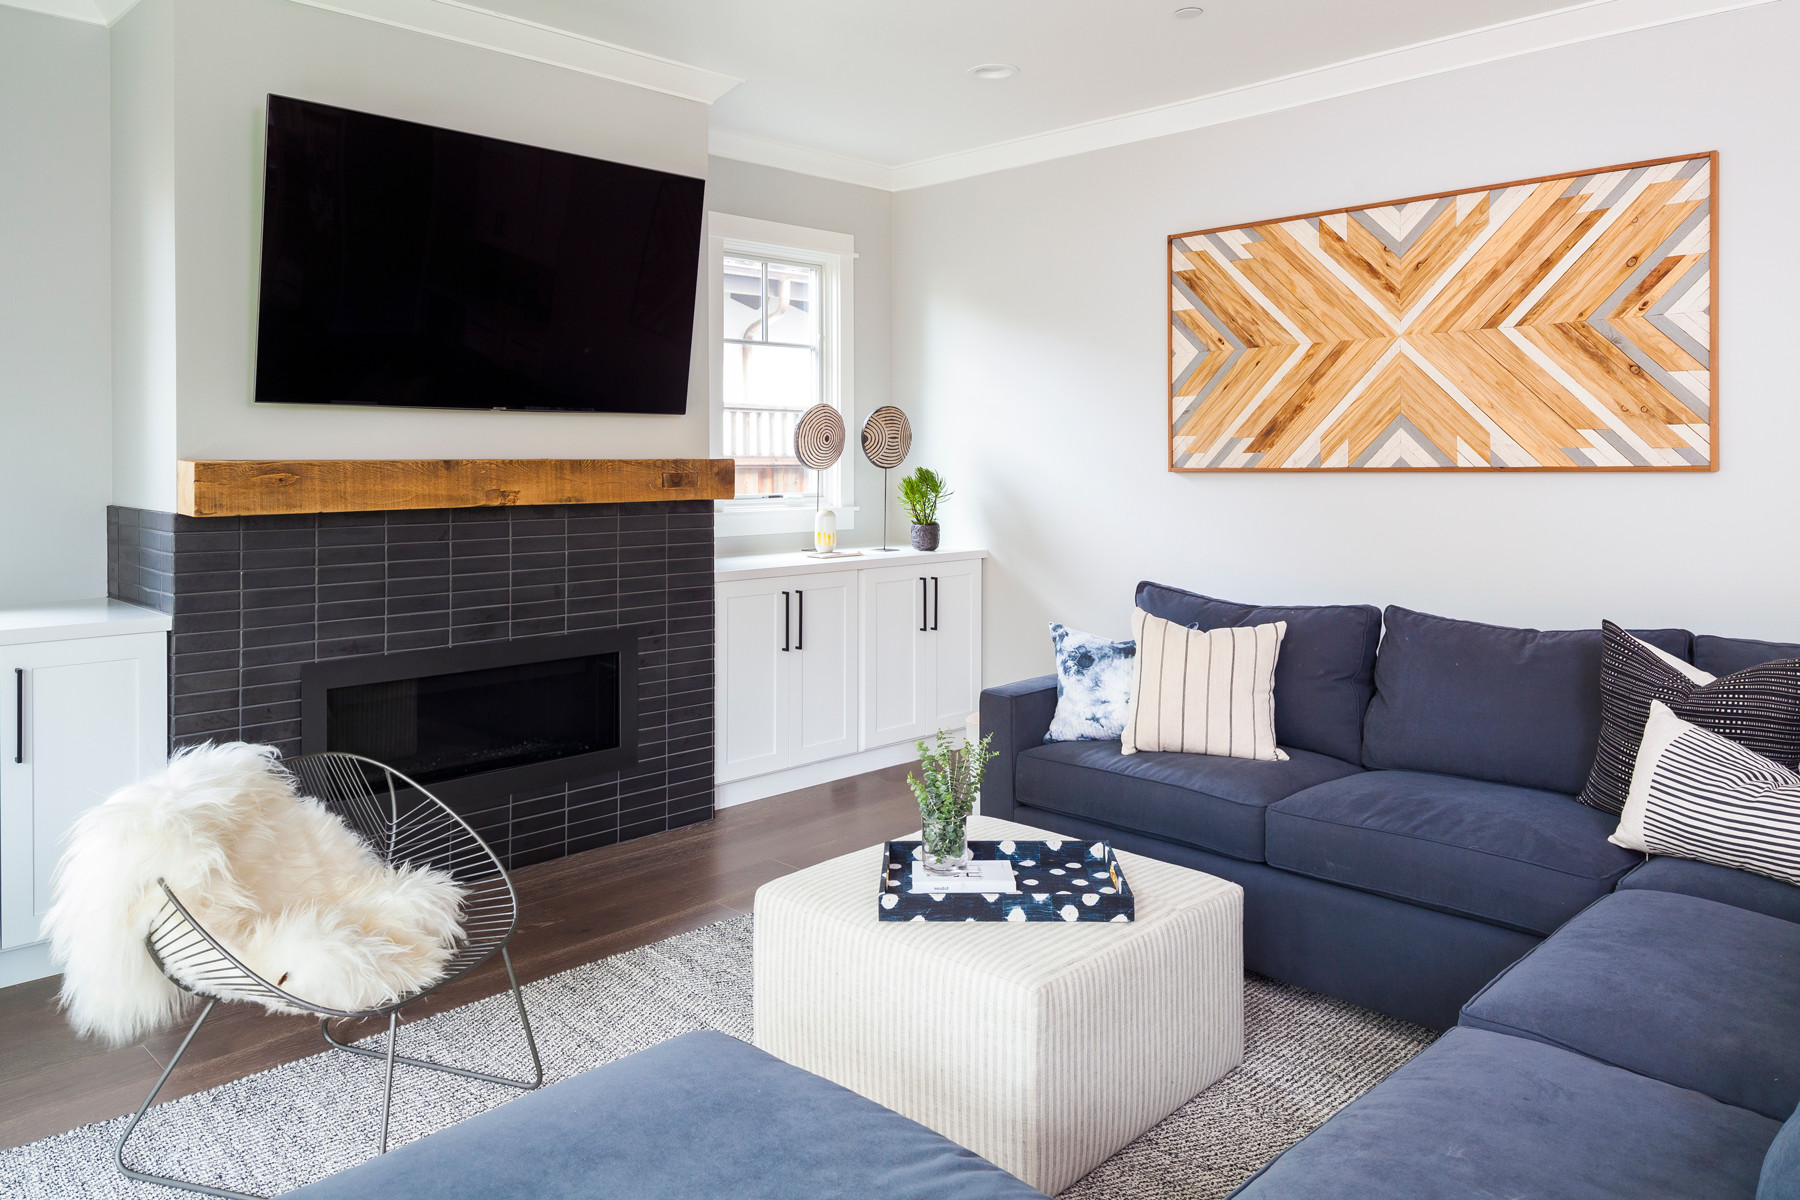 A custom-tiled fireplace is a great spot for the family to gather. The space also features a standout art piece by woodworker Alexsandra Zee.